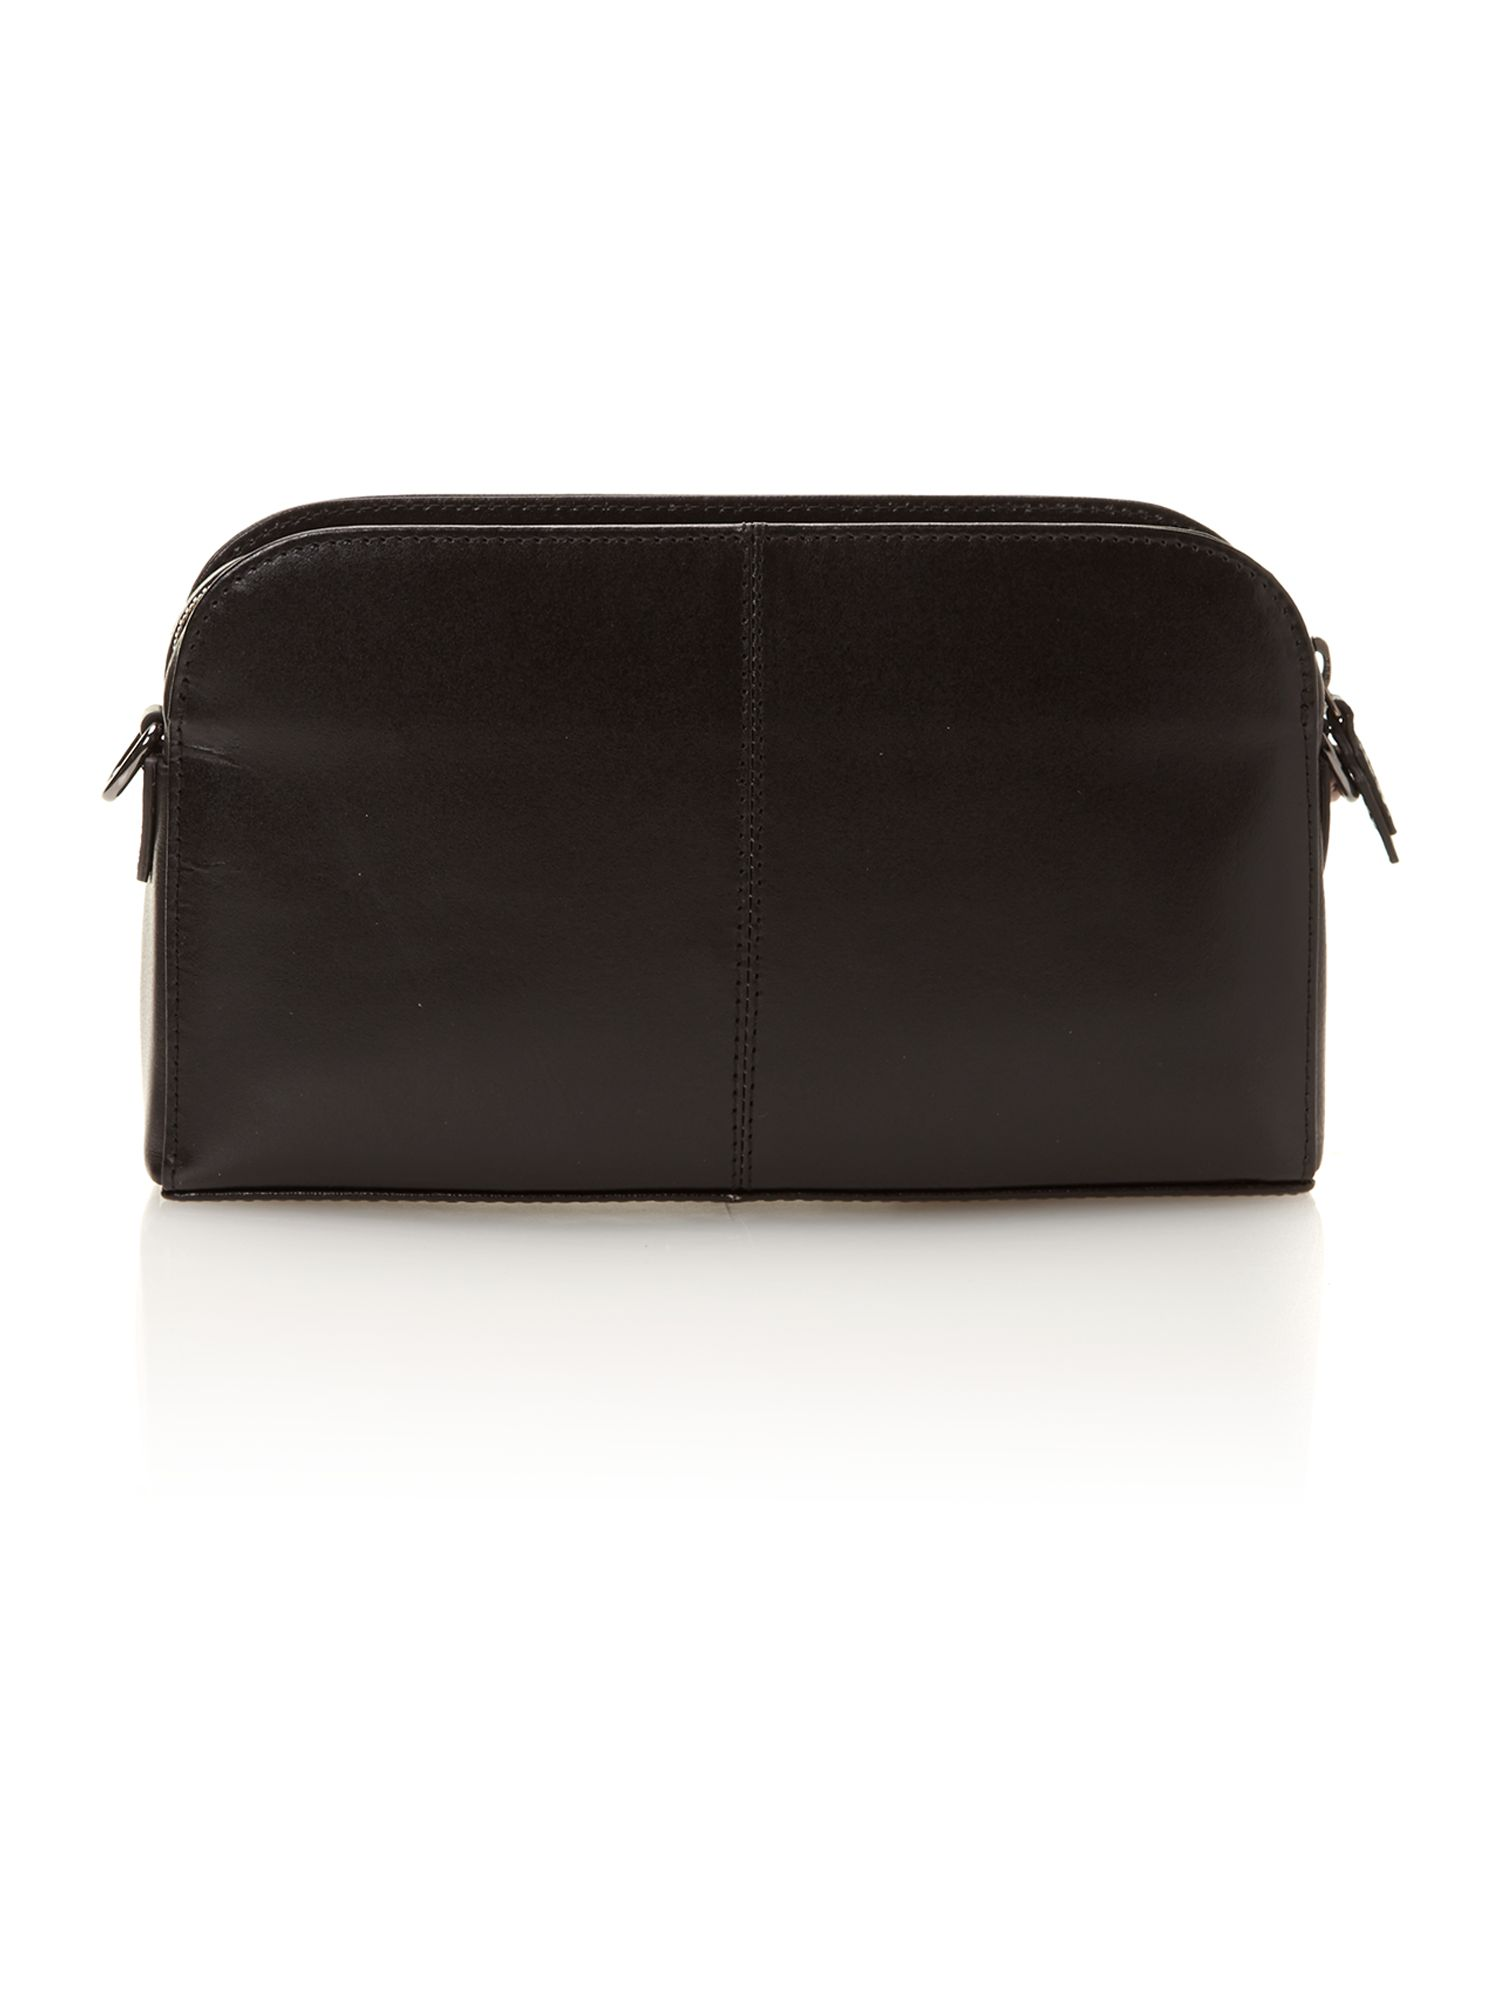 Aldgate black small clutch bag